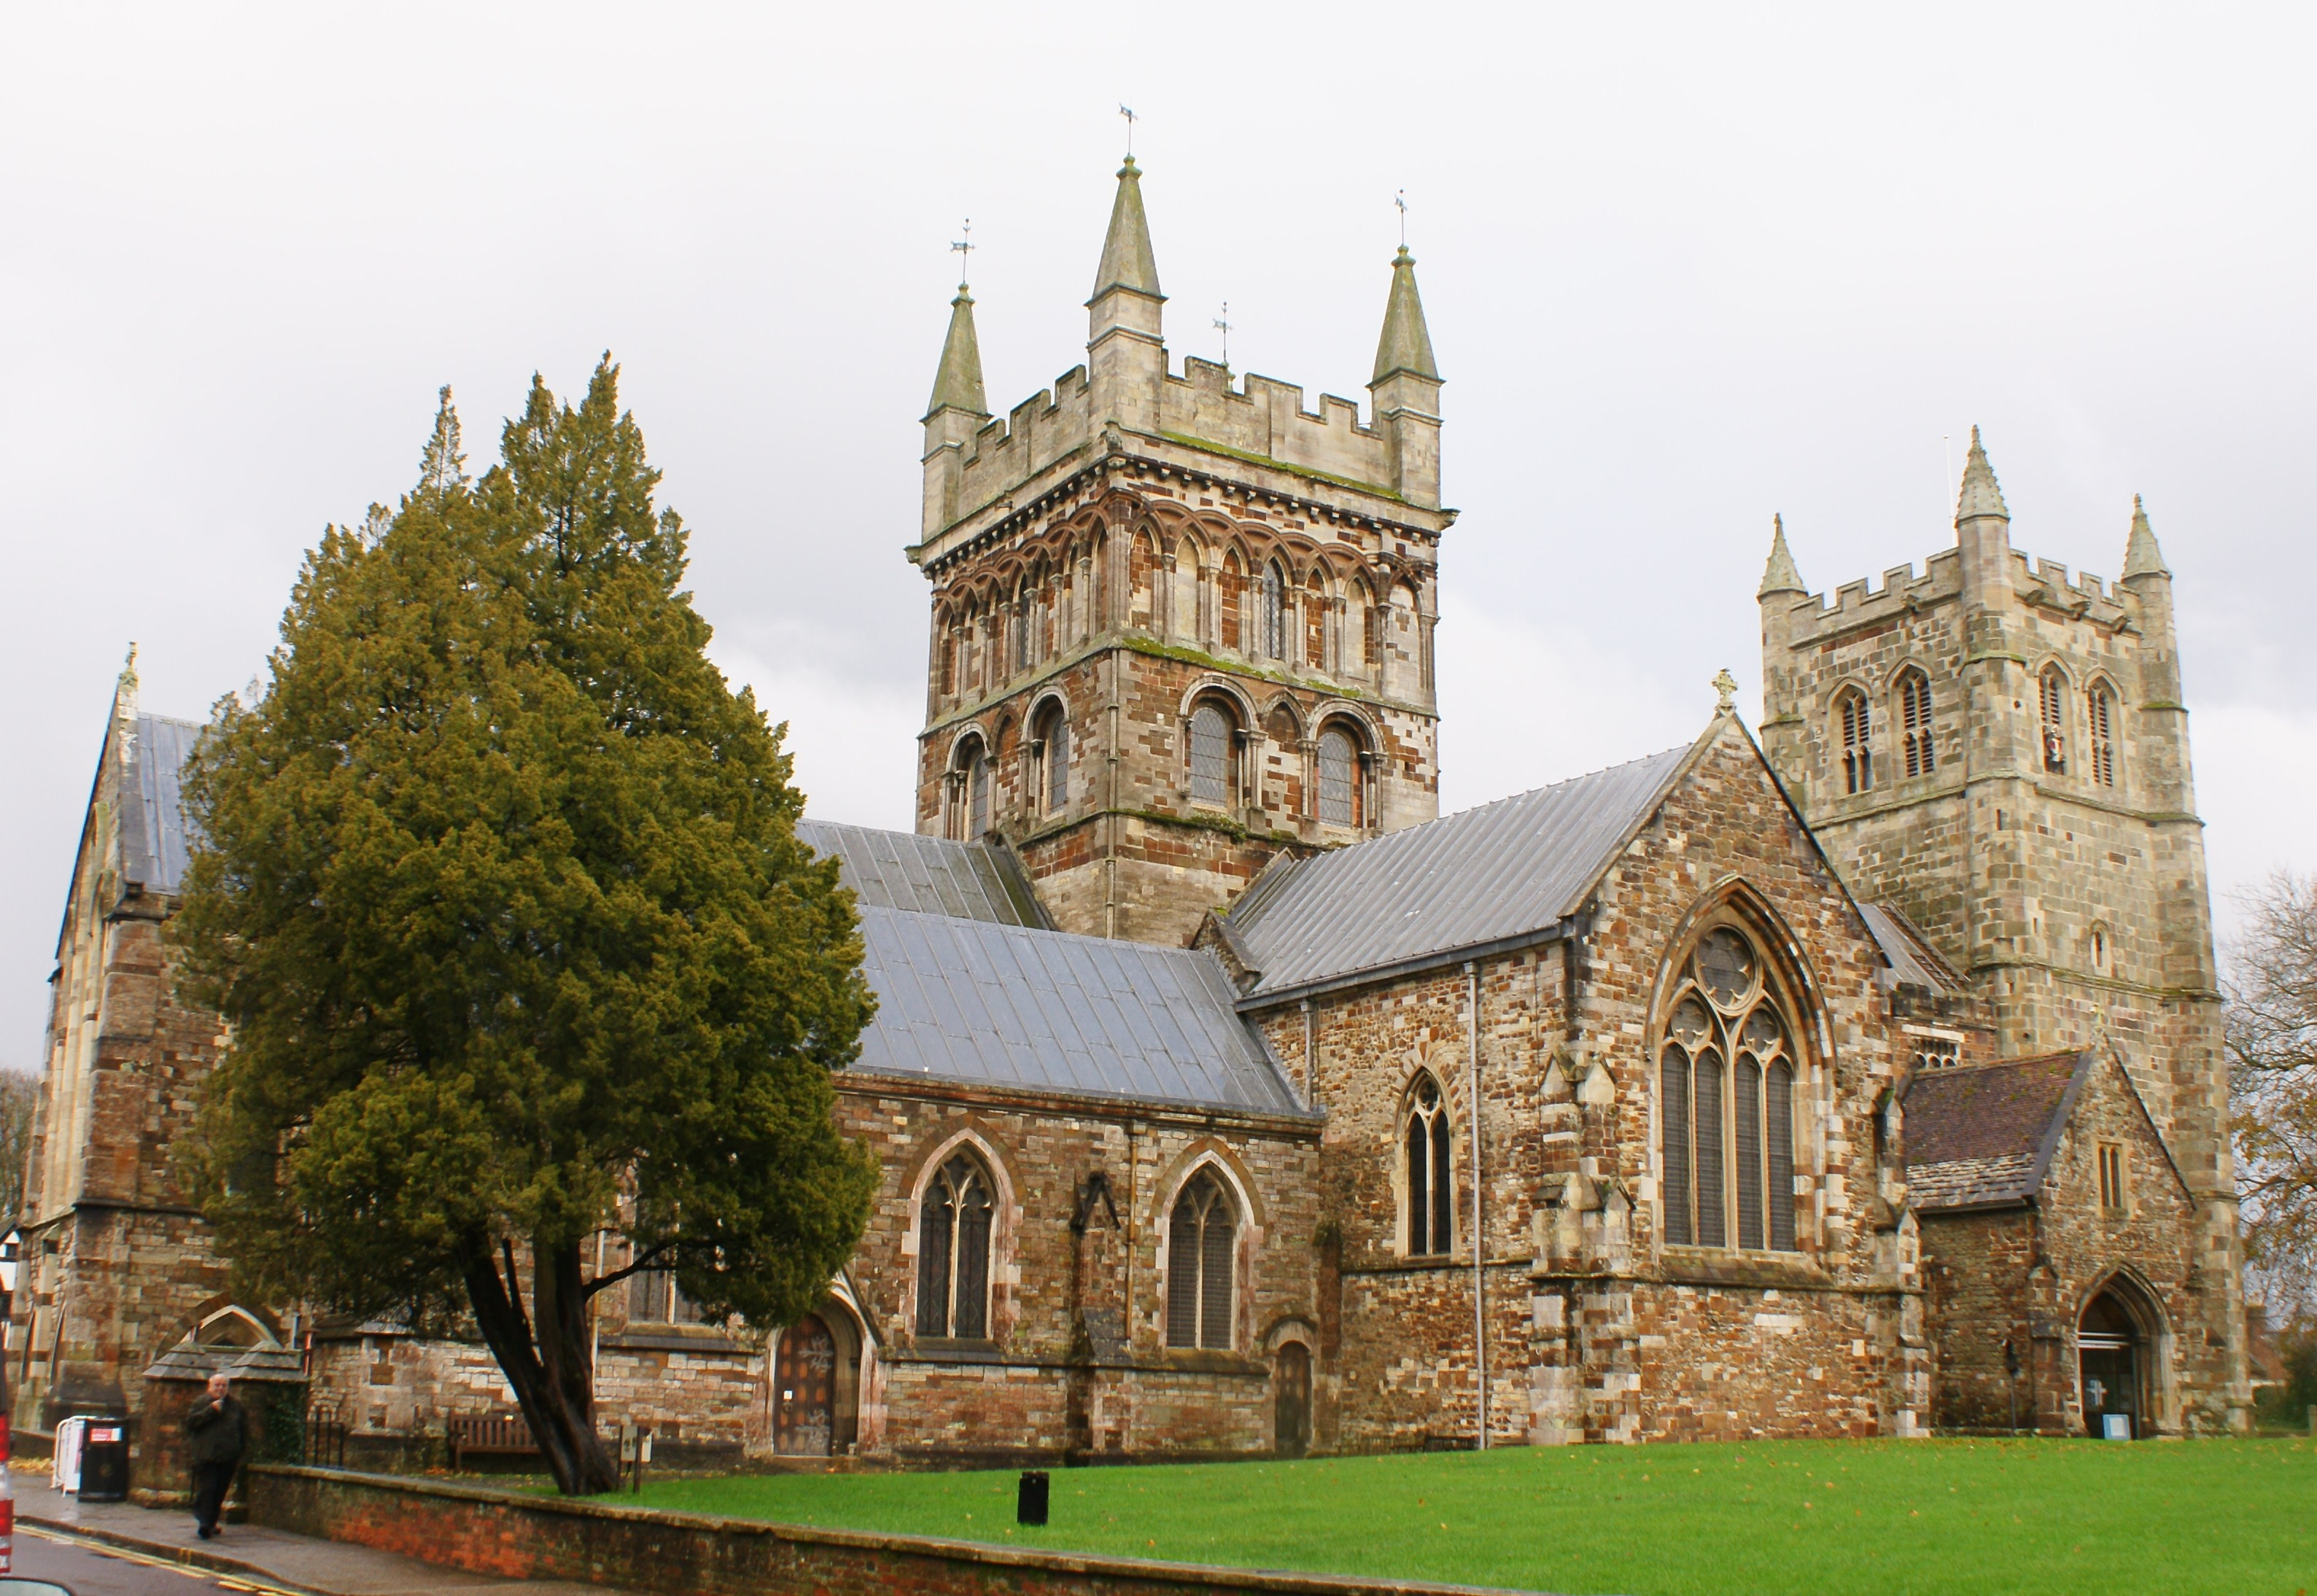 free online dating & chat in wimborne minster Moved permanently the document has moved here.